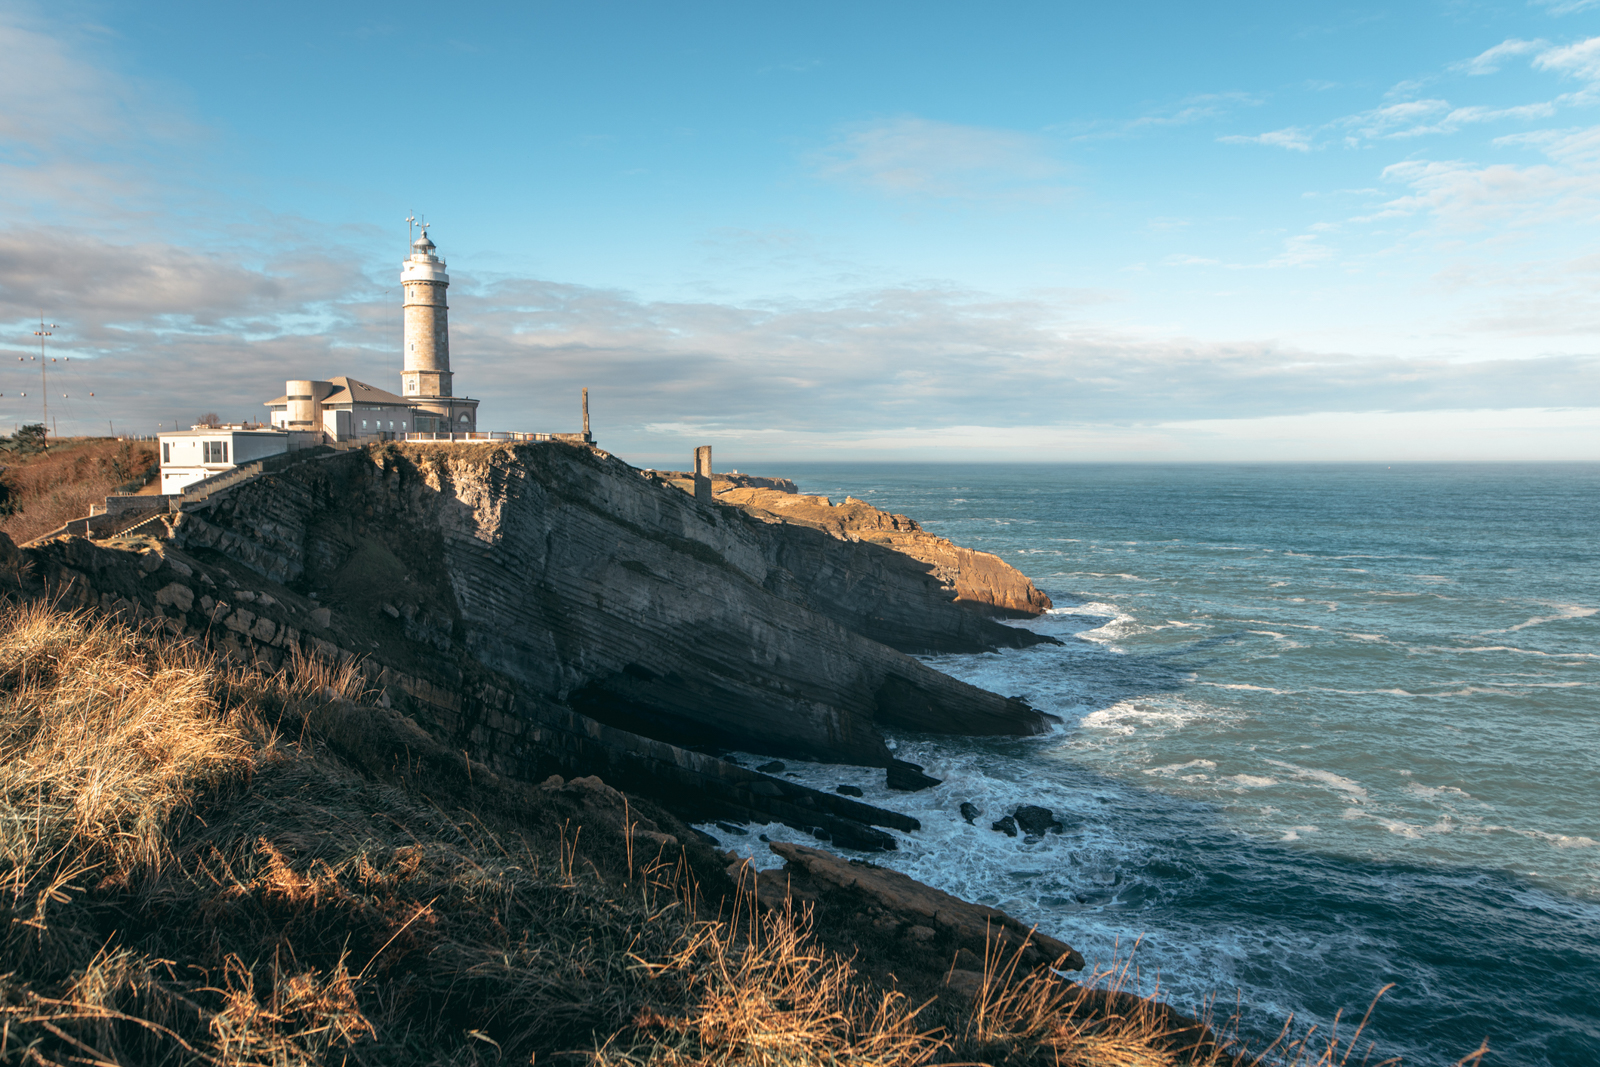 Cabo Mayor lighthouse in Santander, Spain. (Photo by MarioGuti/Getty Images)